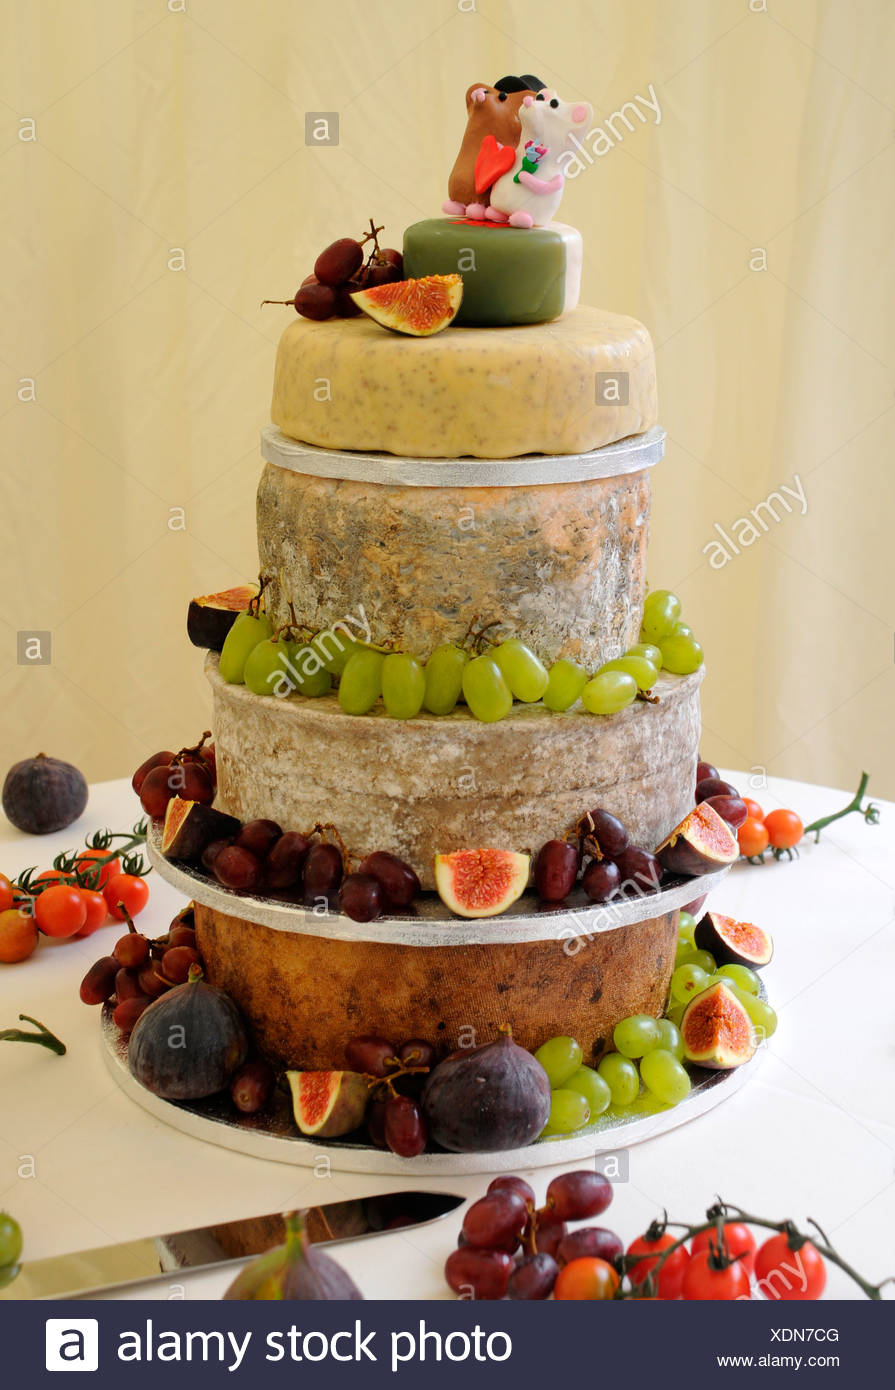 CHEESE CELEBRATION WEDDING CAKE Stock Photo: 283823248 - Alamy